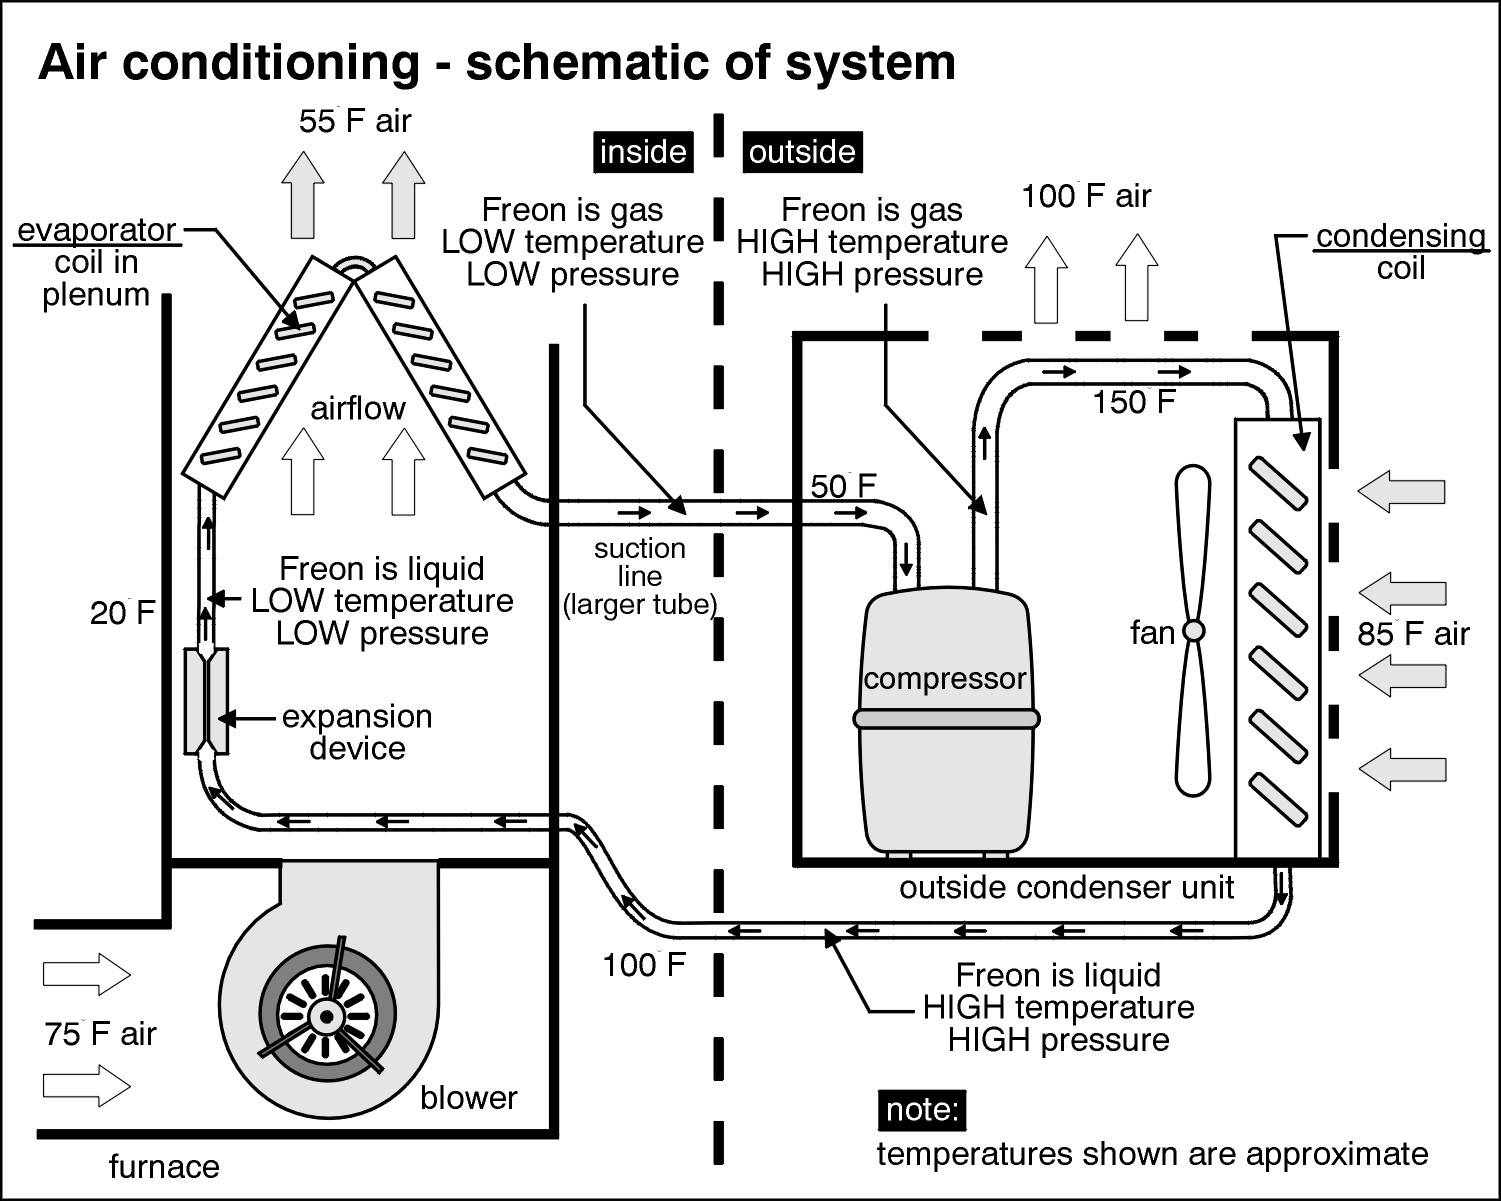 piping equipment layout checklist